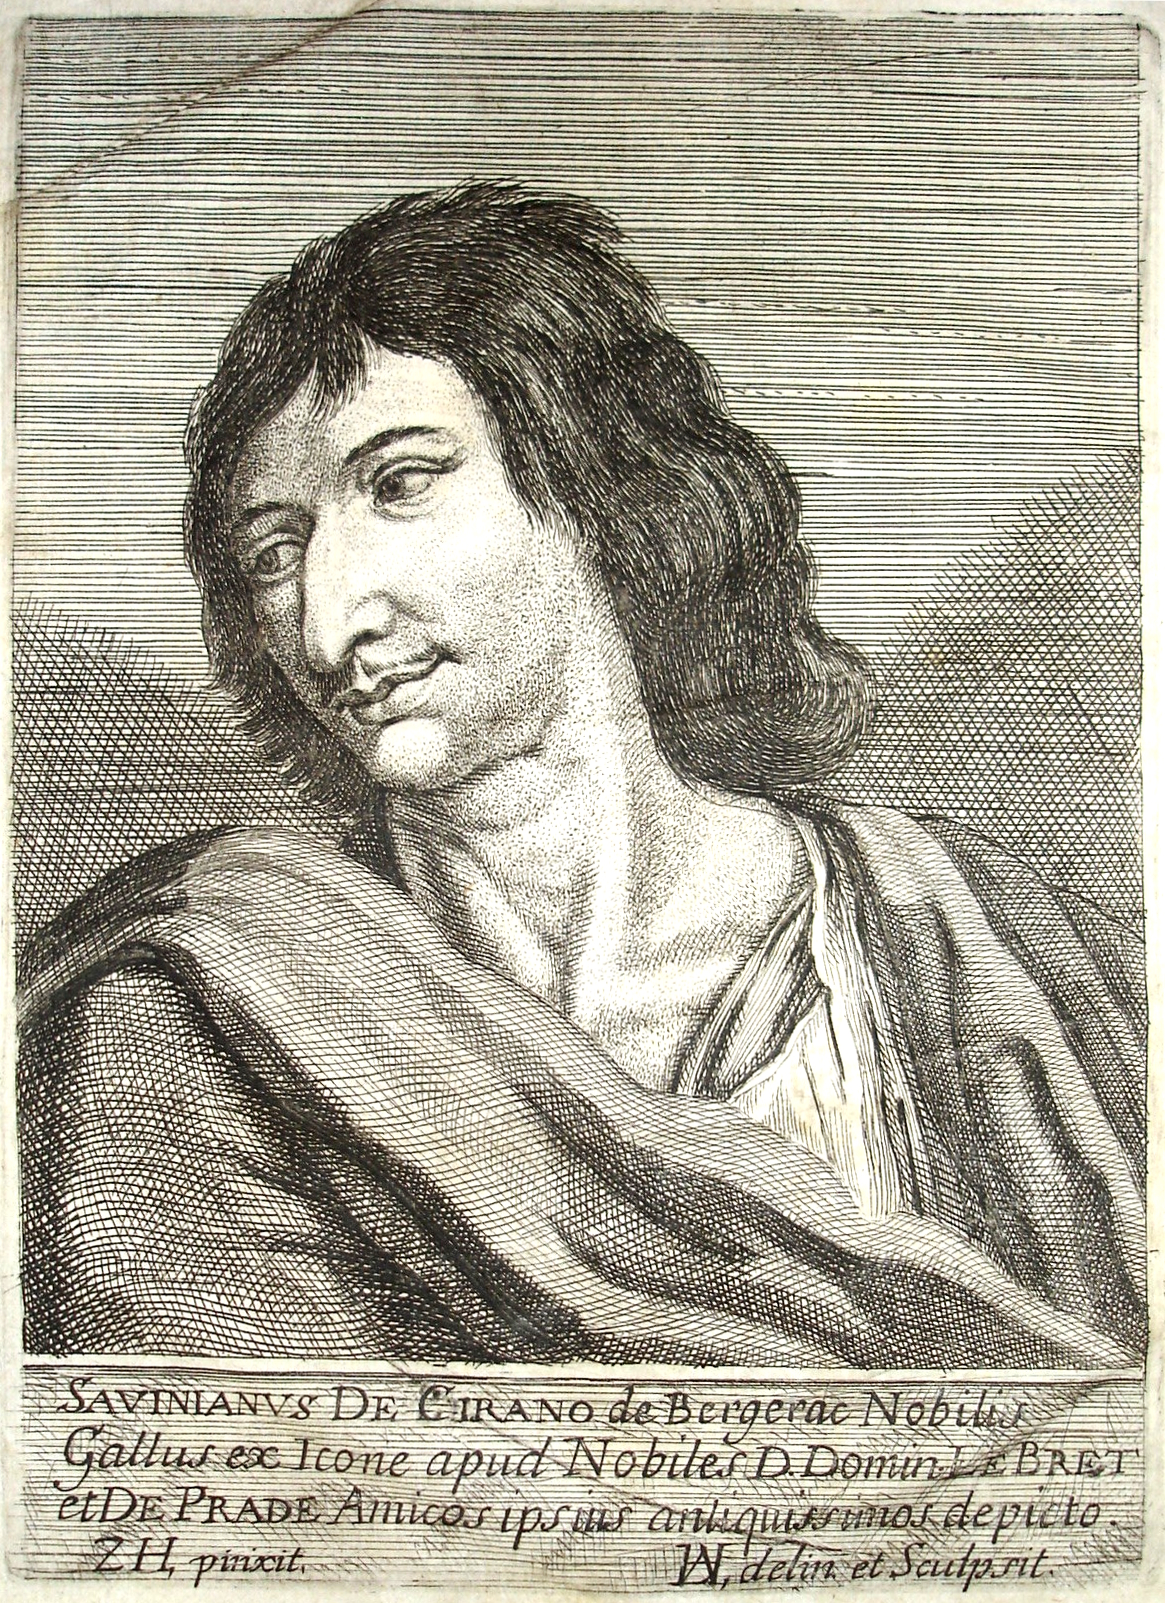 Cyrano de Bergerac (1619 – 1655), Portrait drawn and engraved by an artist who signed with a monogram, after a painting by Zacharie Heince.